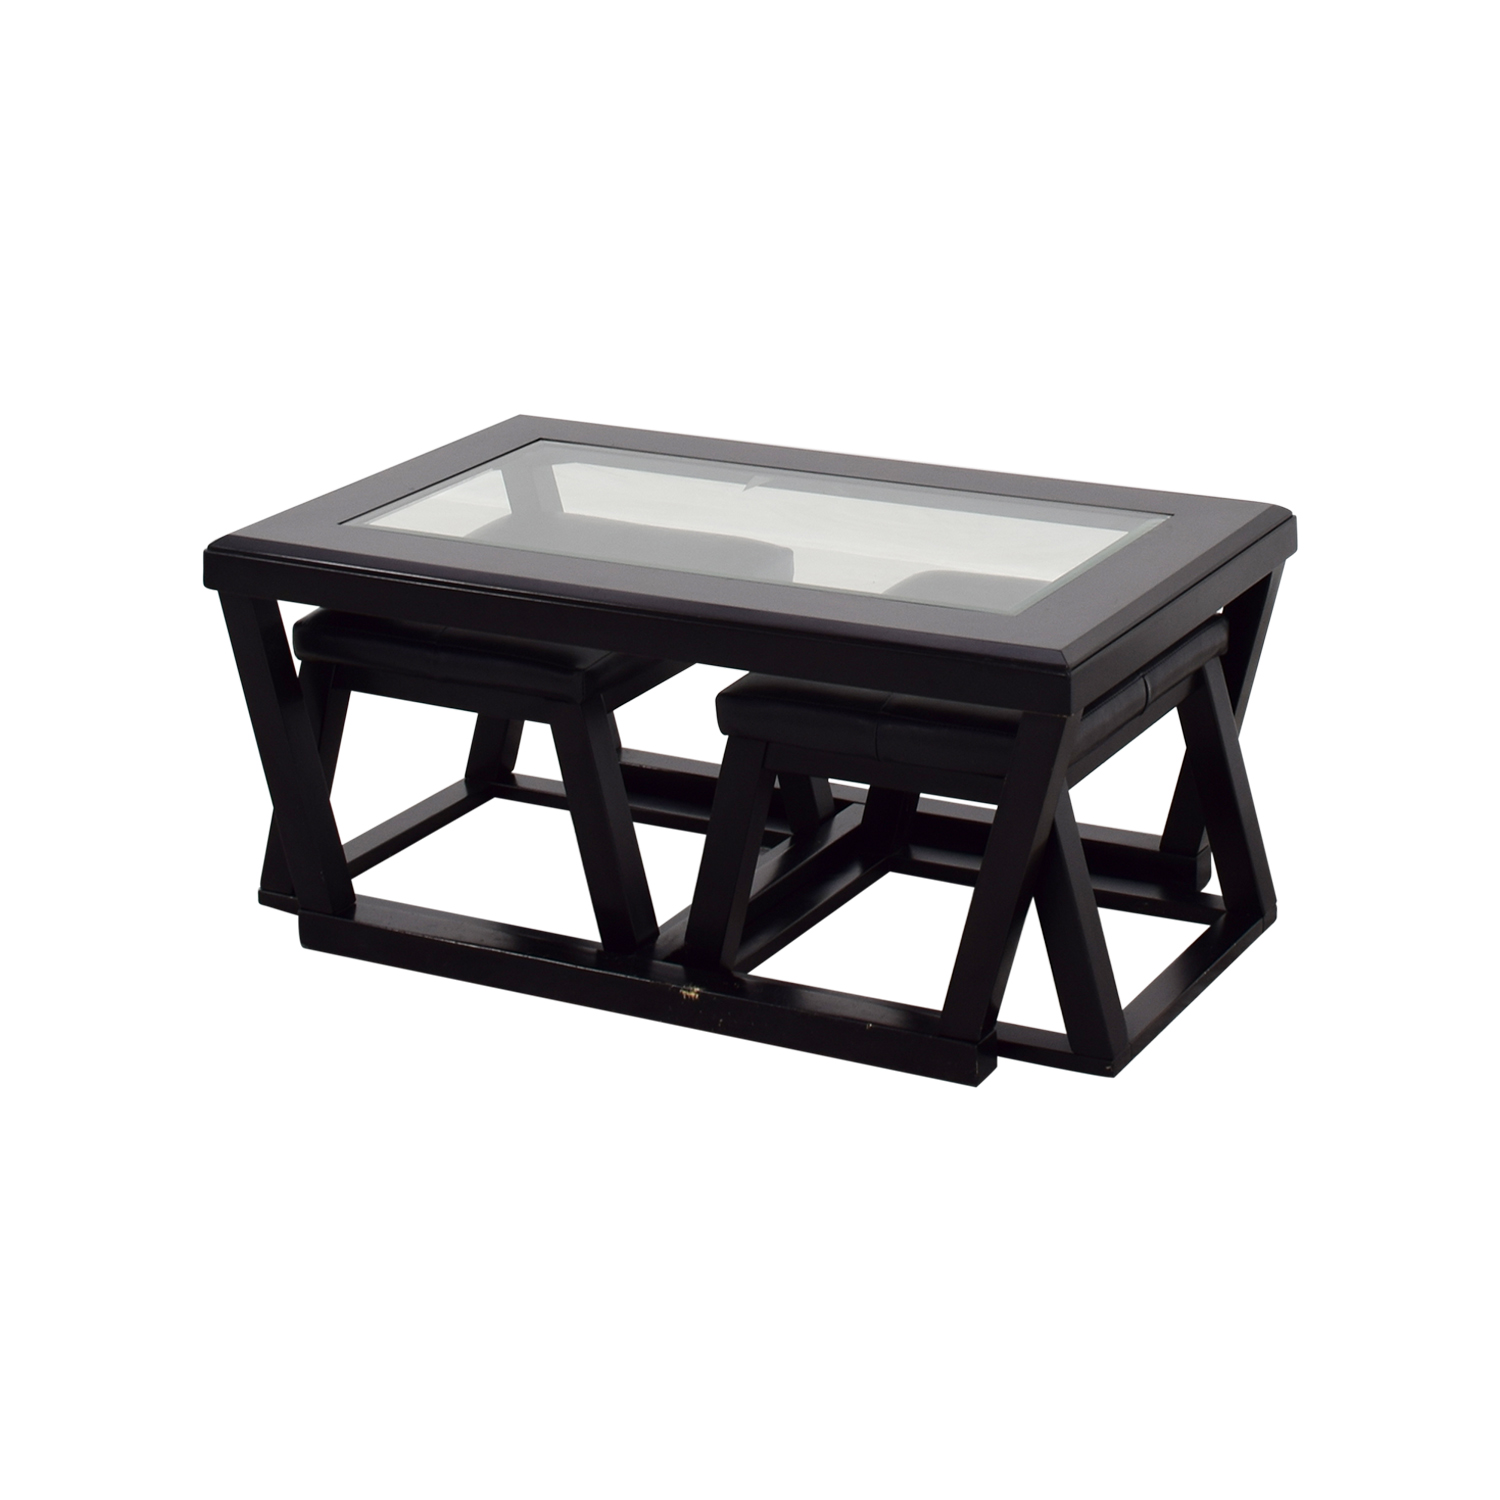 53 Off Ashley Furniture Ashley Furniture Coffee Table Tables